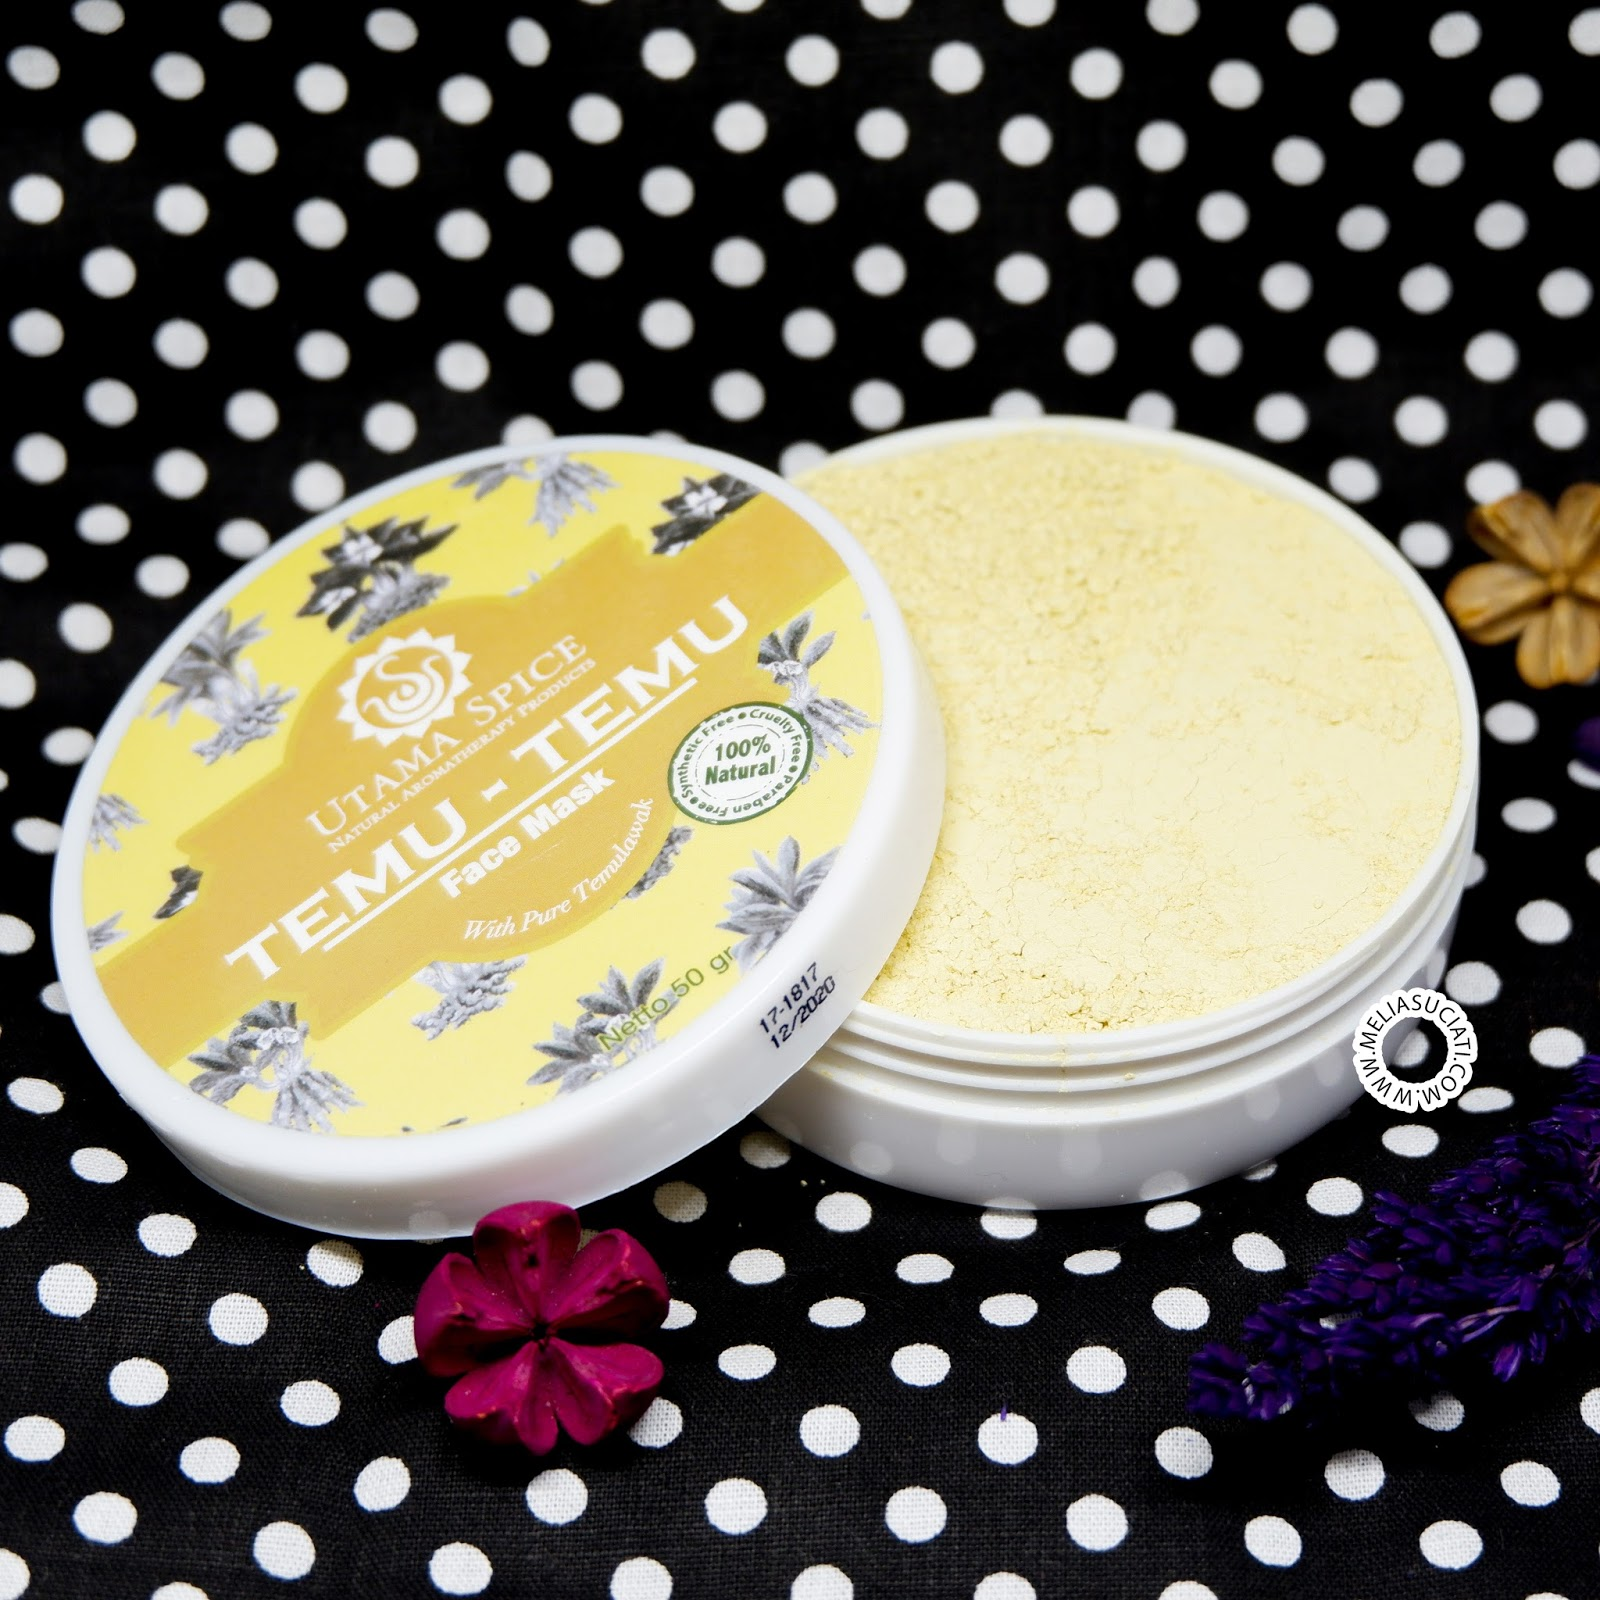 Utama Spice Traditional Skincare Based In Bali